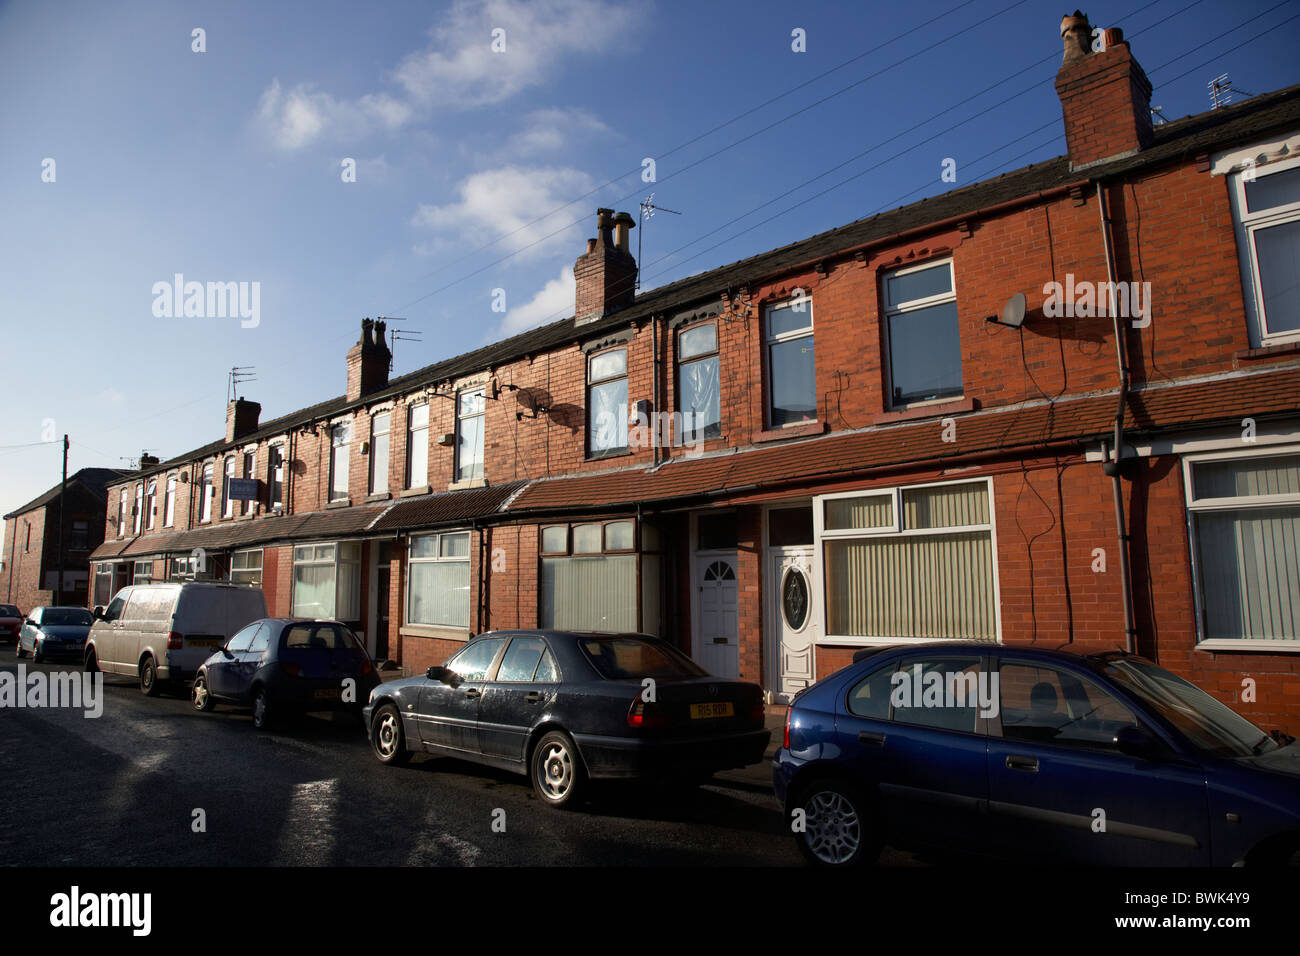 row of 2up 2down modernised victorian red brick terraced houses in manchester uk - Stock Image